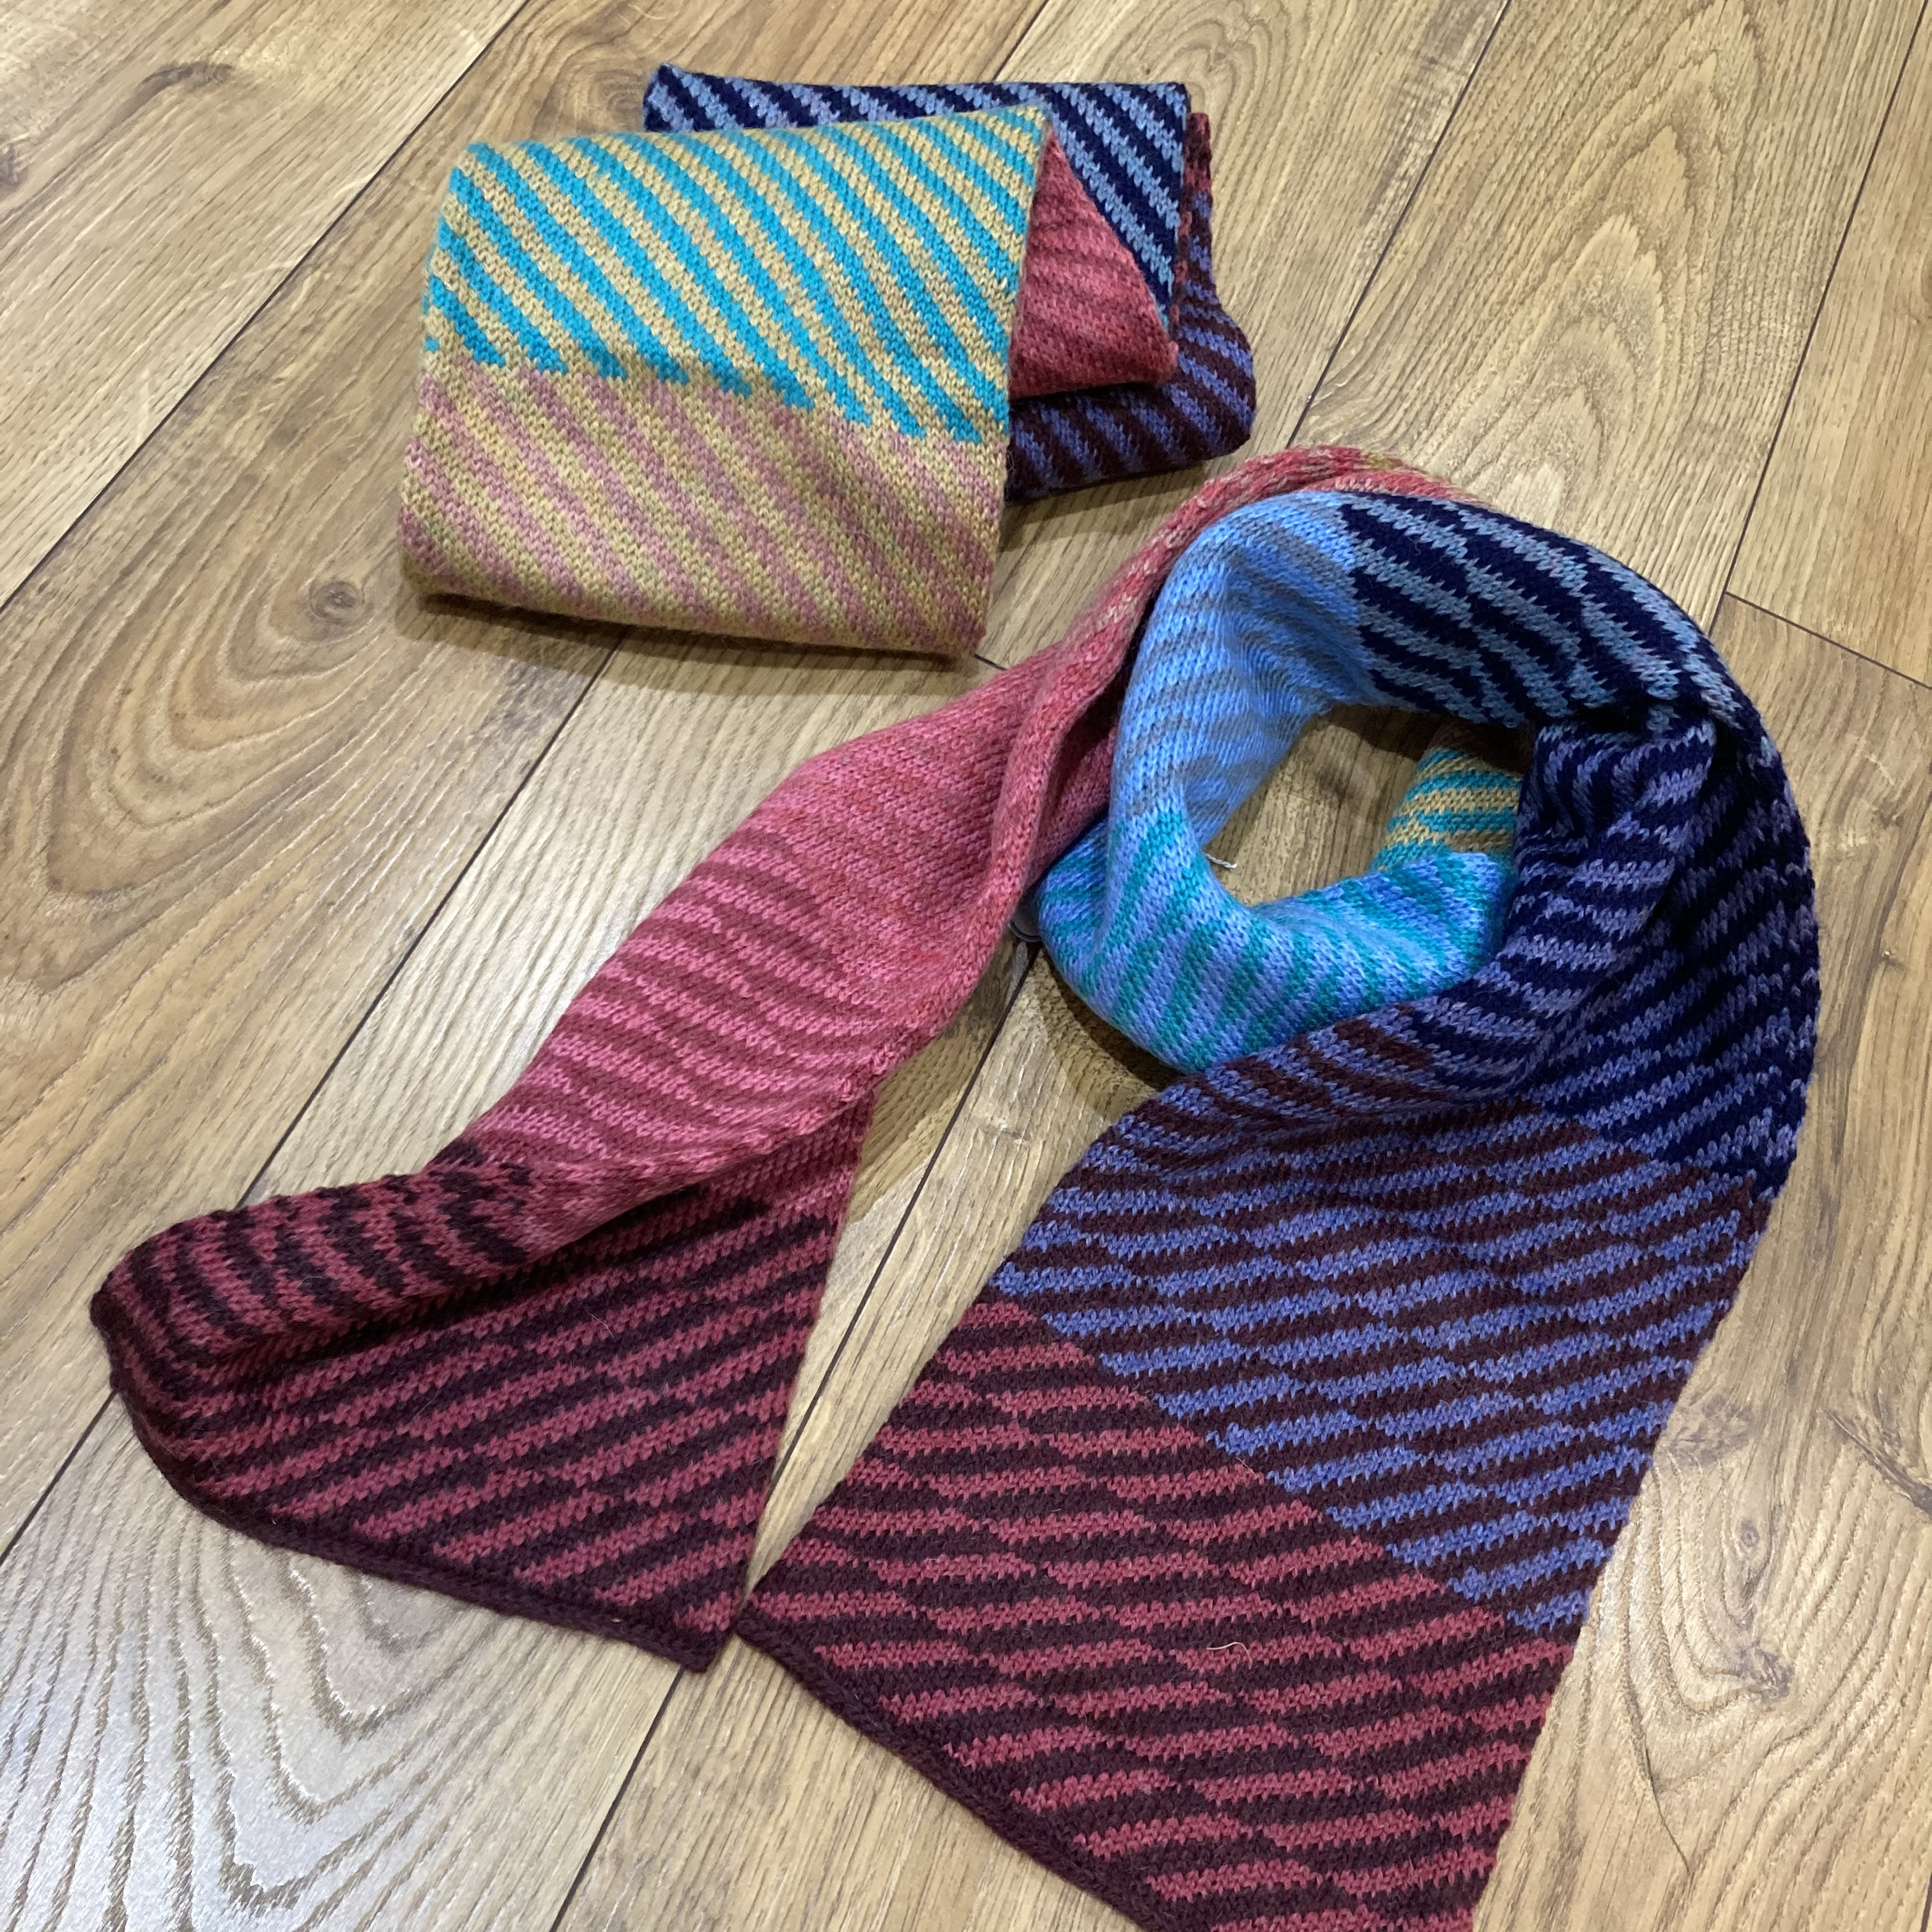 Knitted multi coloured  diagonally striped scarf by Big Knit